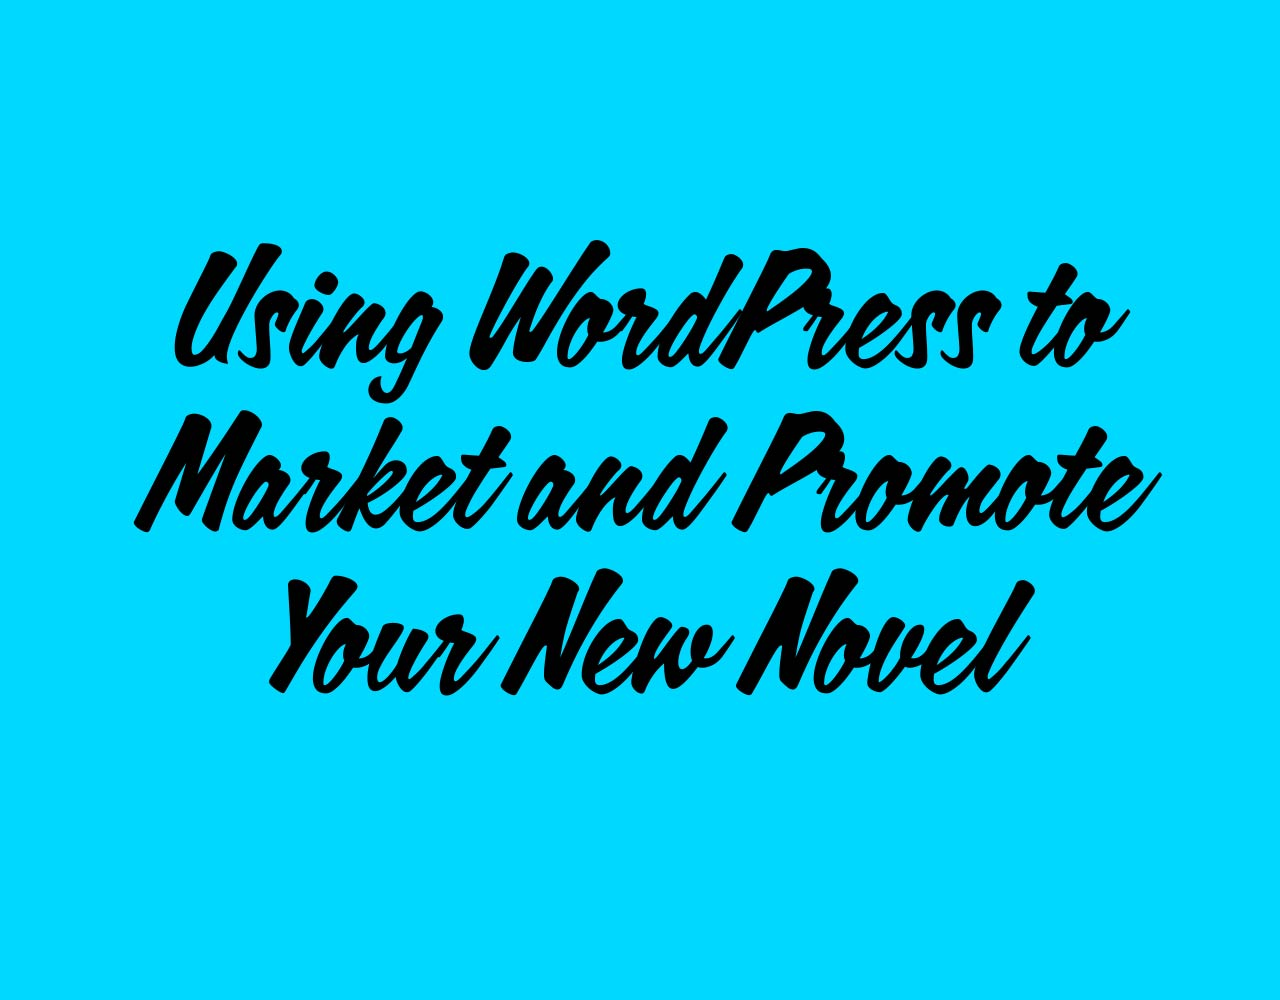 How To Use a WordPress Website to Market and Promote Your Novel